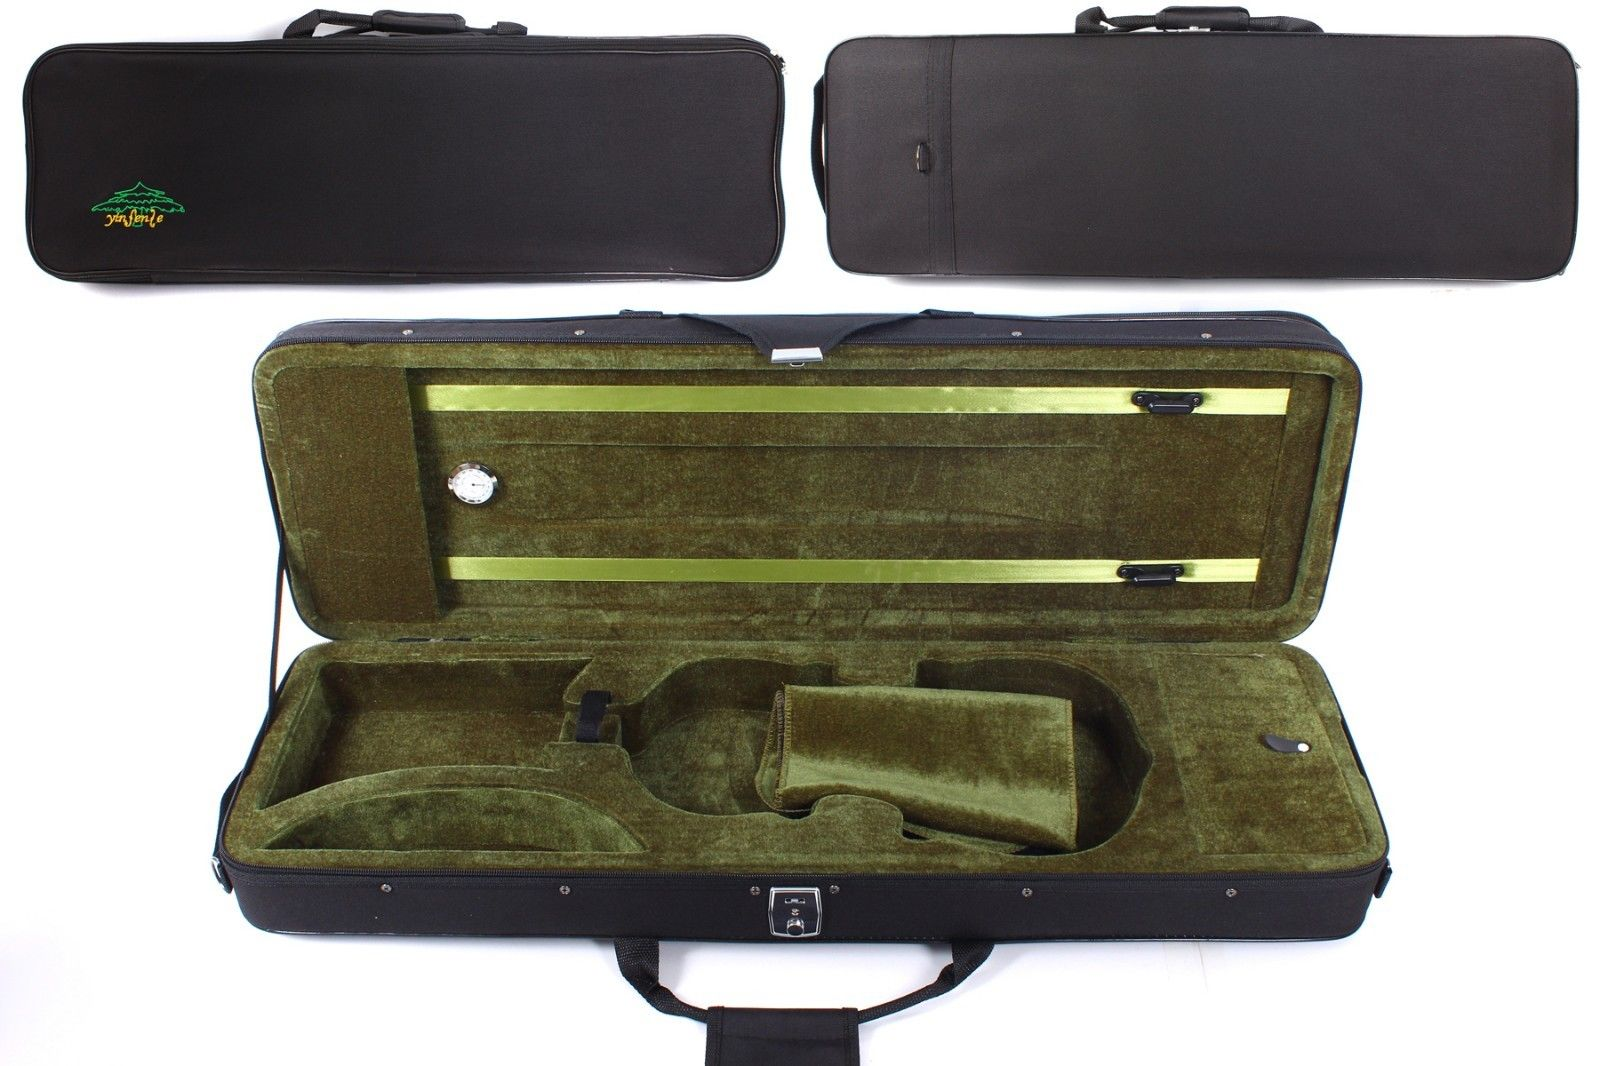 4/4 Violin Case Violin Box Wooden Struct Light Strong Sheet Bag Full Size Violin Accessory yinfente 4 4 violin case box black mixed carbon fiber oblong case strong light 2 1kg music sheet bag full size